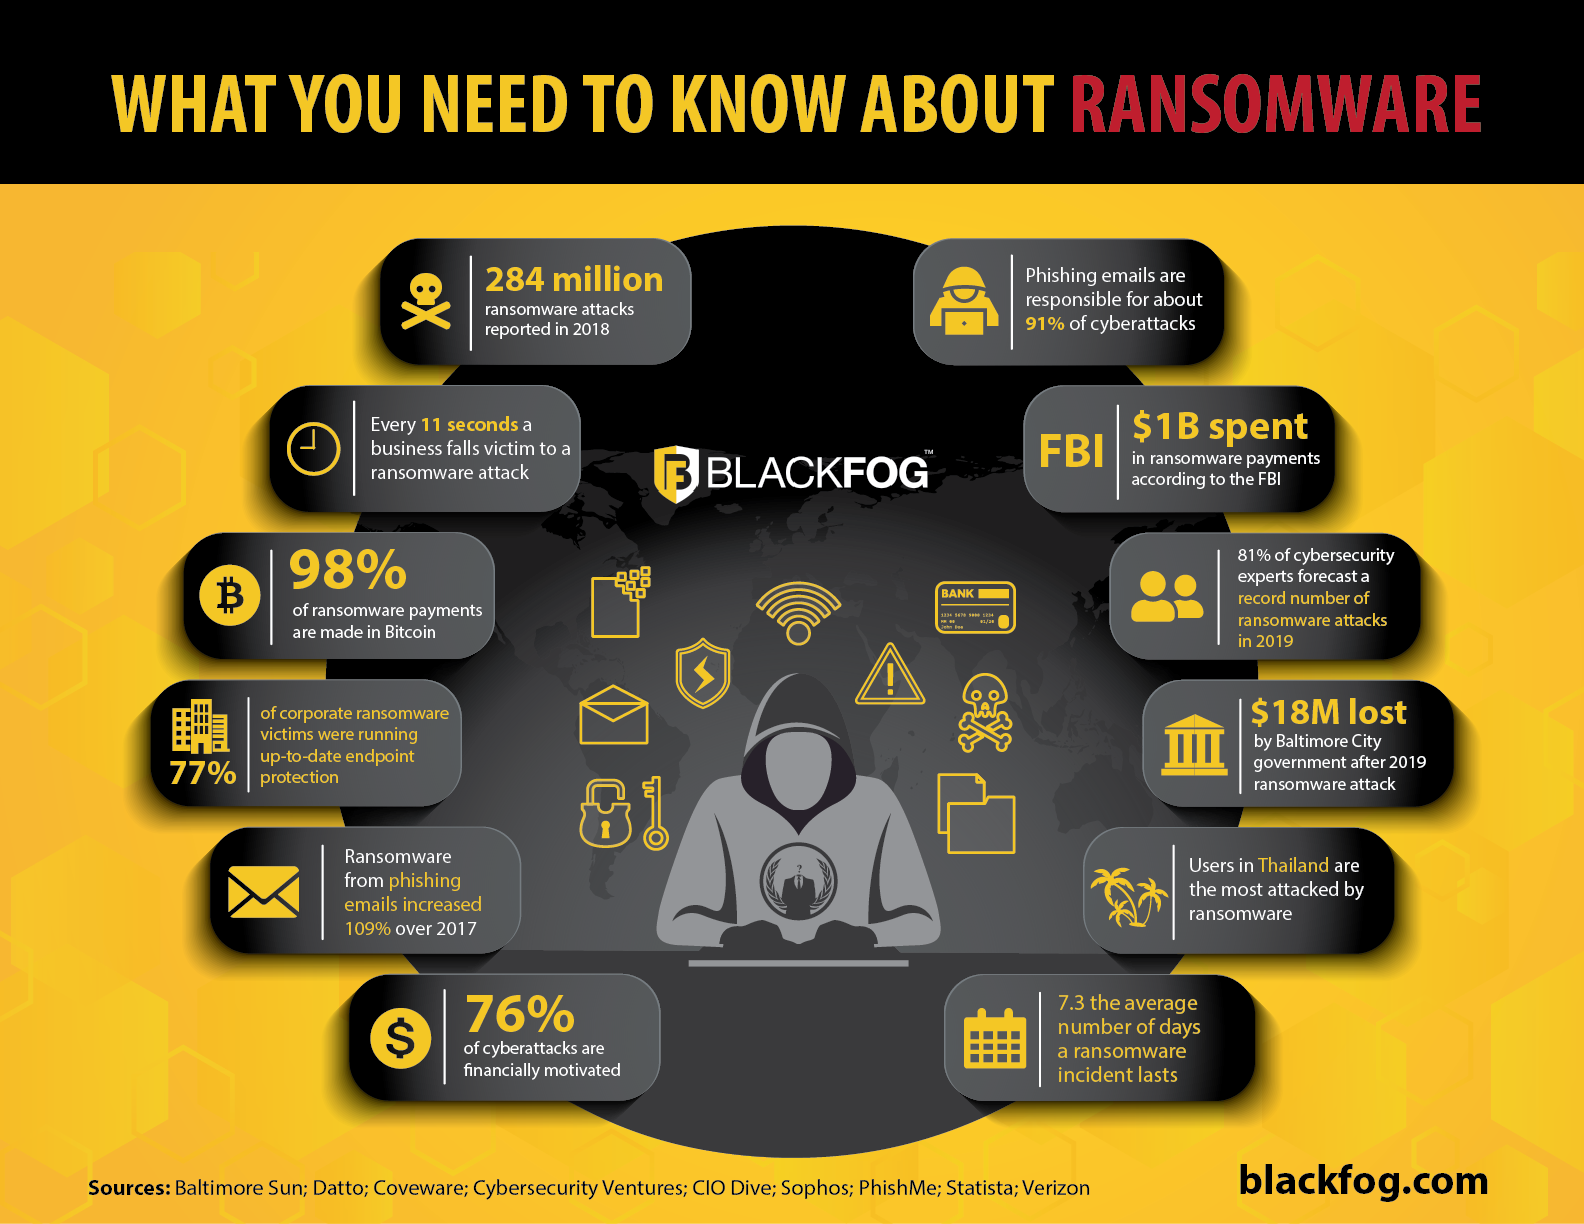 What is Ransomware? Things You Need to Know About Ransomware